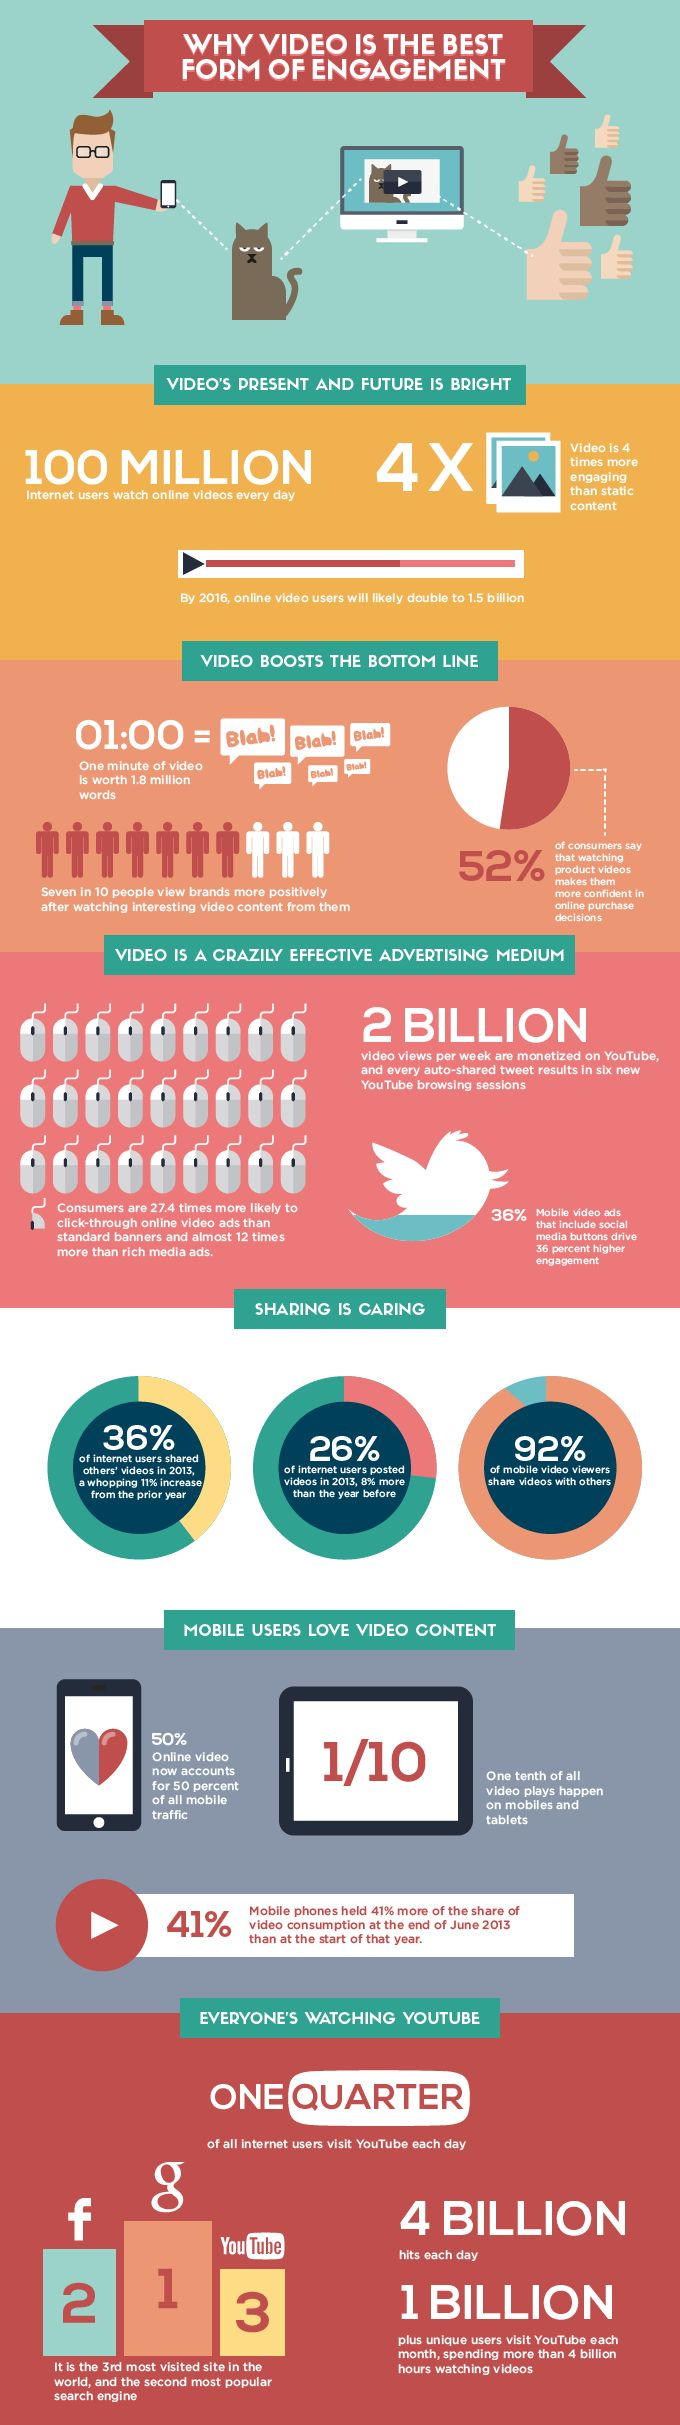 Infographic: Why Video is the Best Form of Engagement #infographic